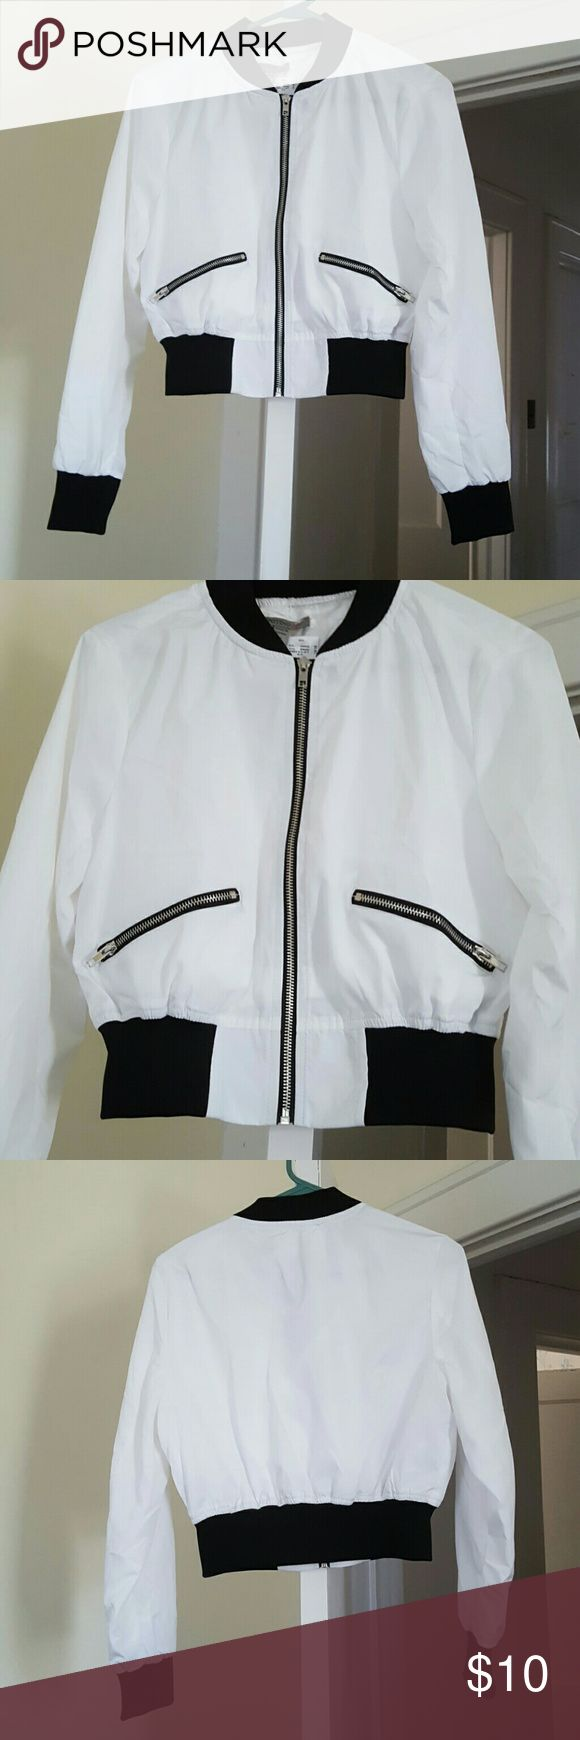 White and Black Bomber Jacket Lightweight Bomber Jacket purchased from Wet Seal is new with tags and never worn. Beautiful jacket and in excellent condition. Wet Seal Jackets & Coats